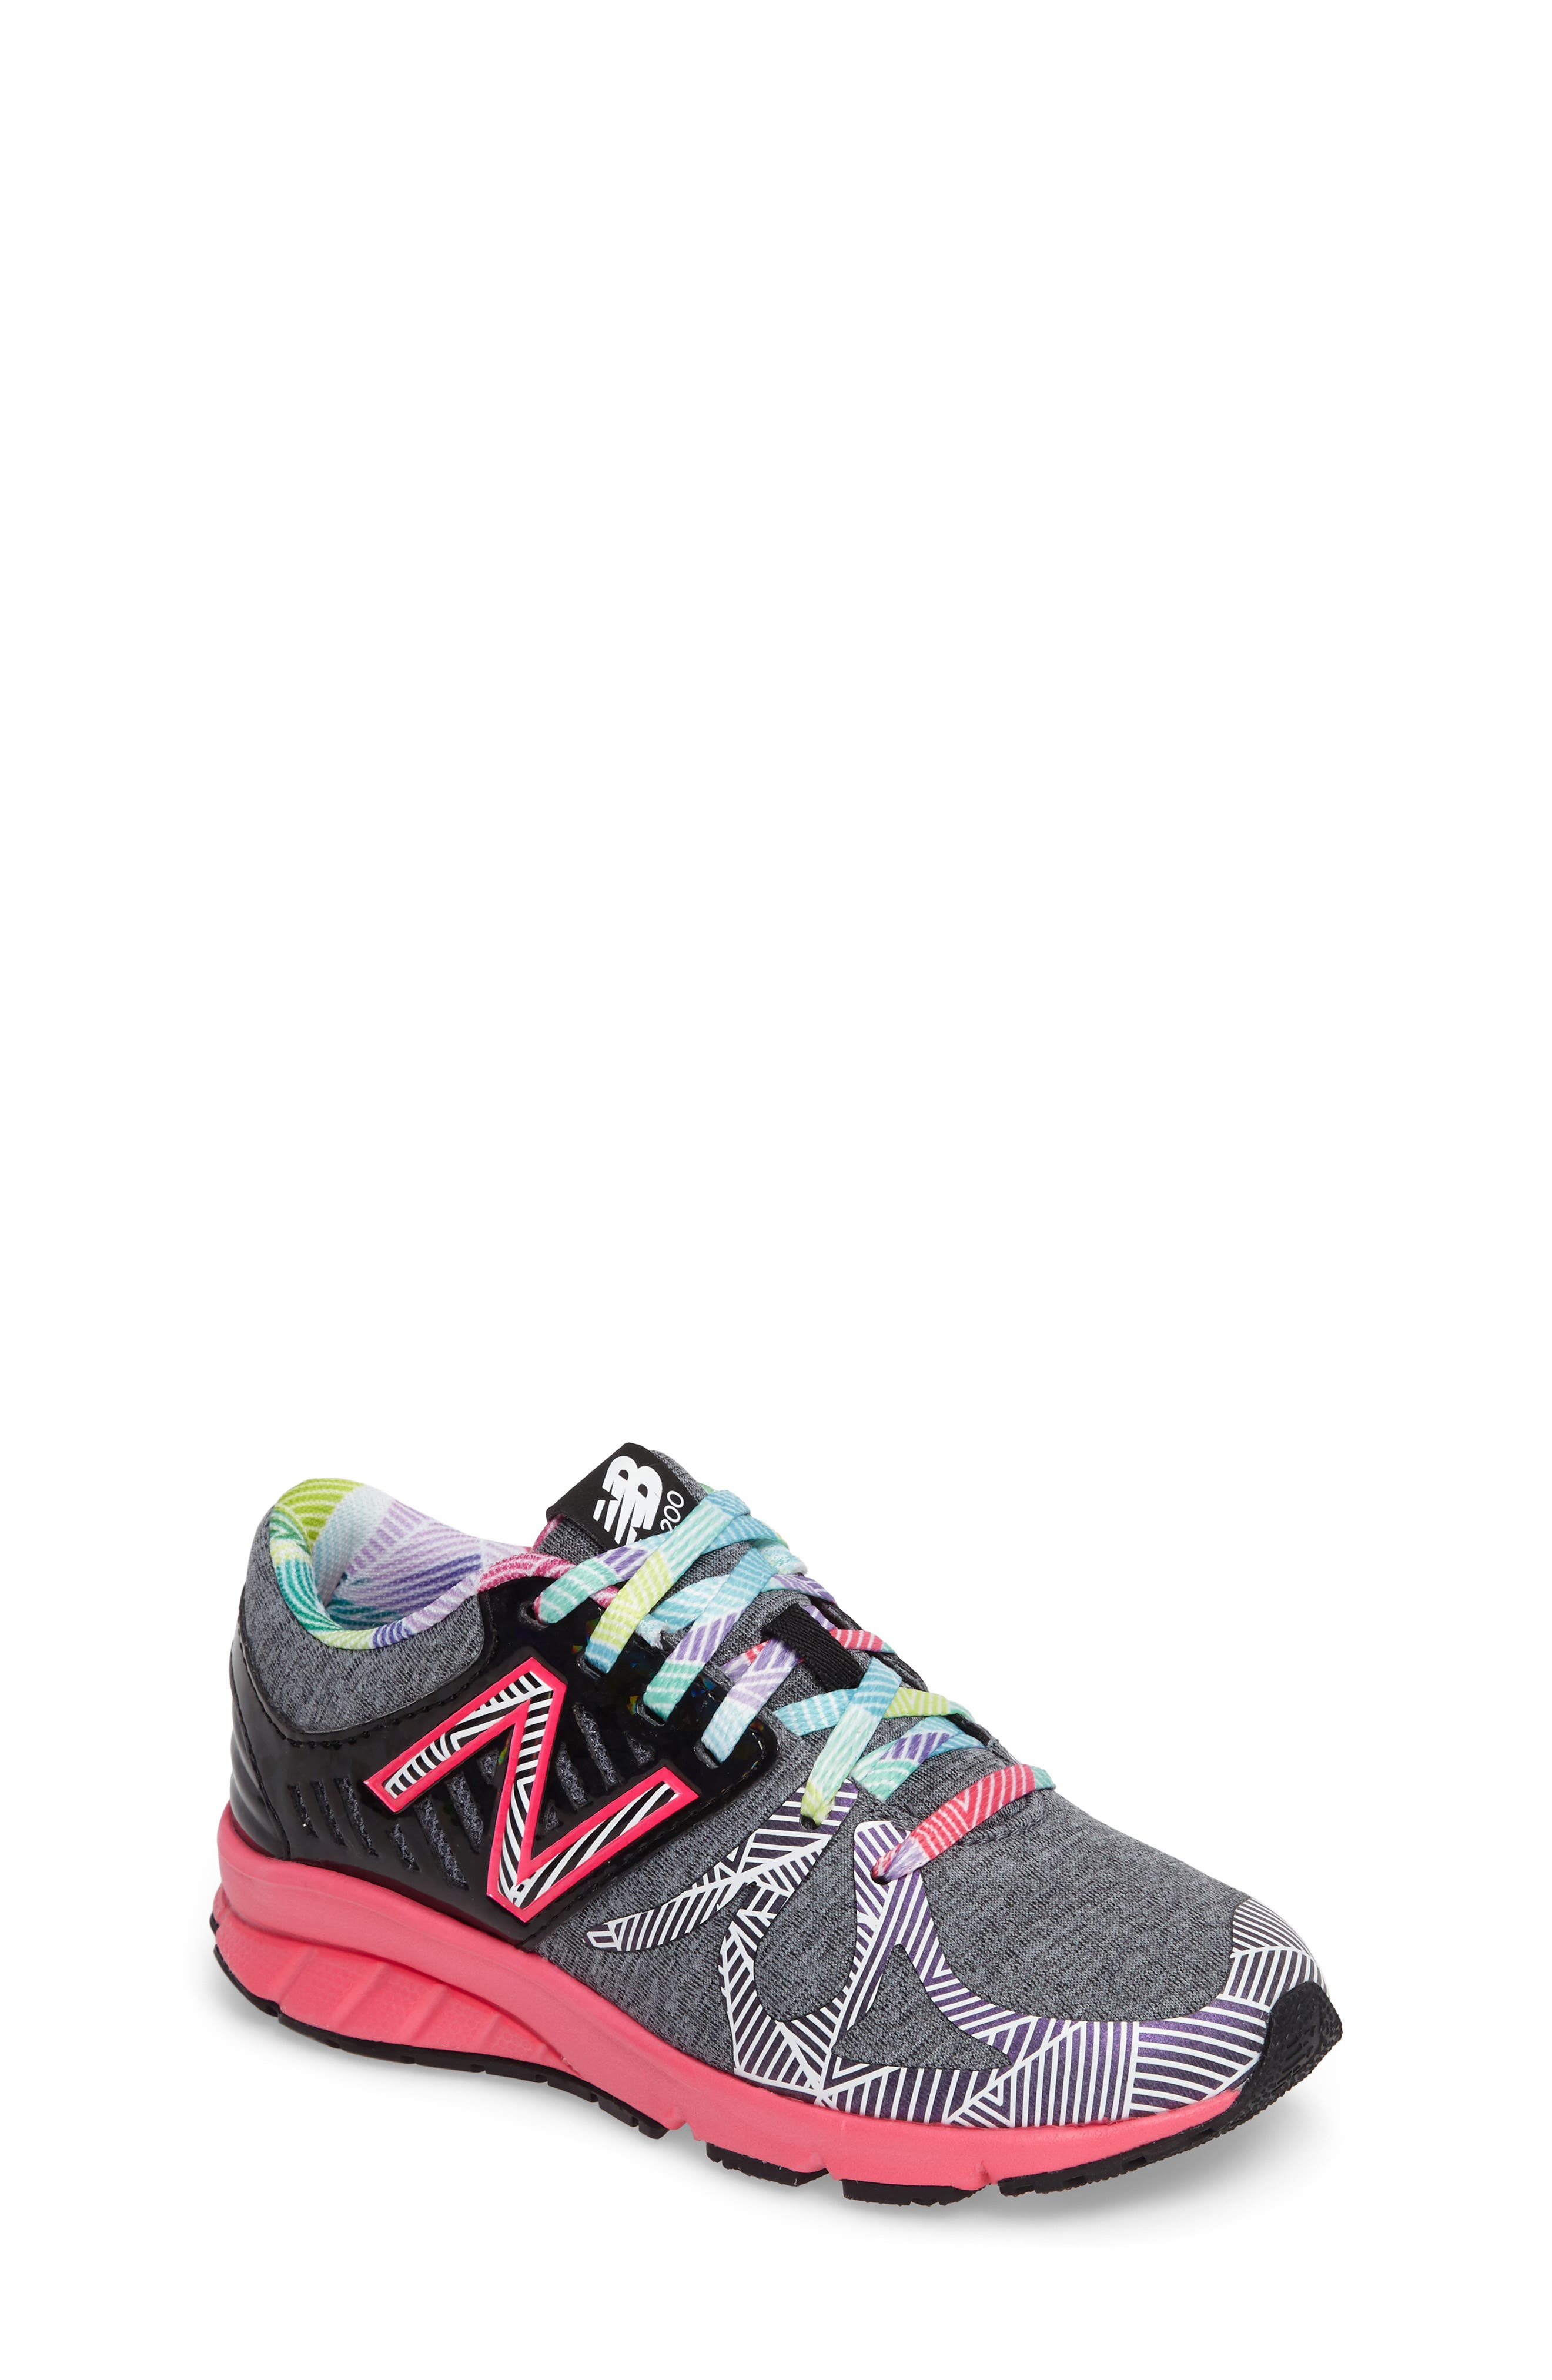 New Balance 200 Electric Rainbow Athletic Shoe (Toddler, Little Kid & Big Kid)